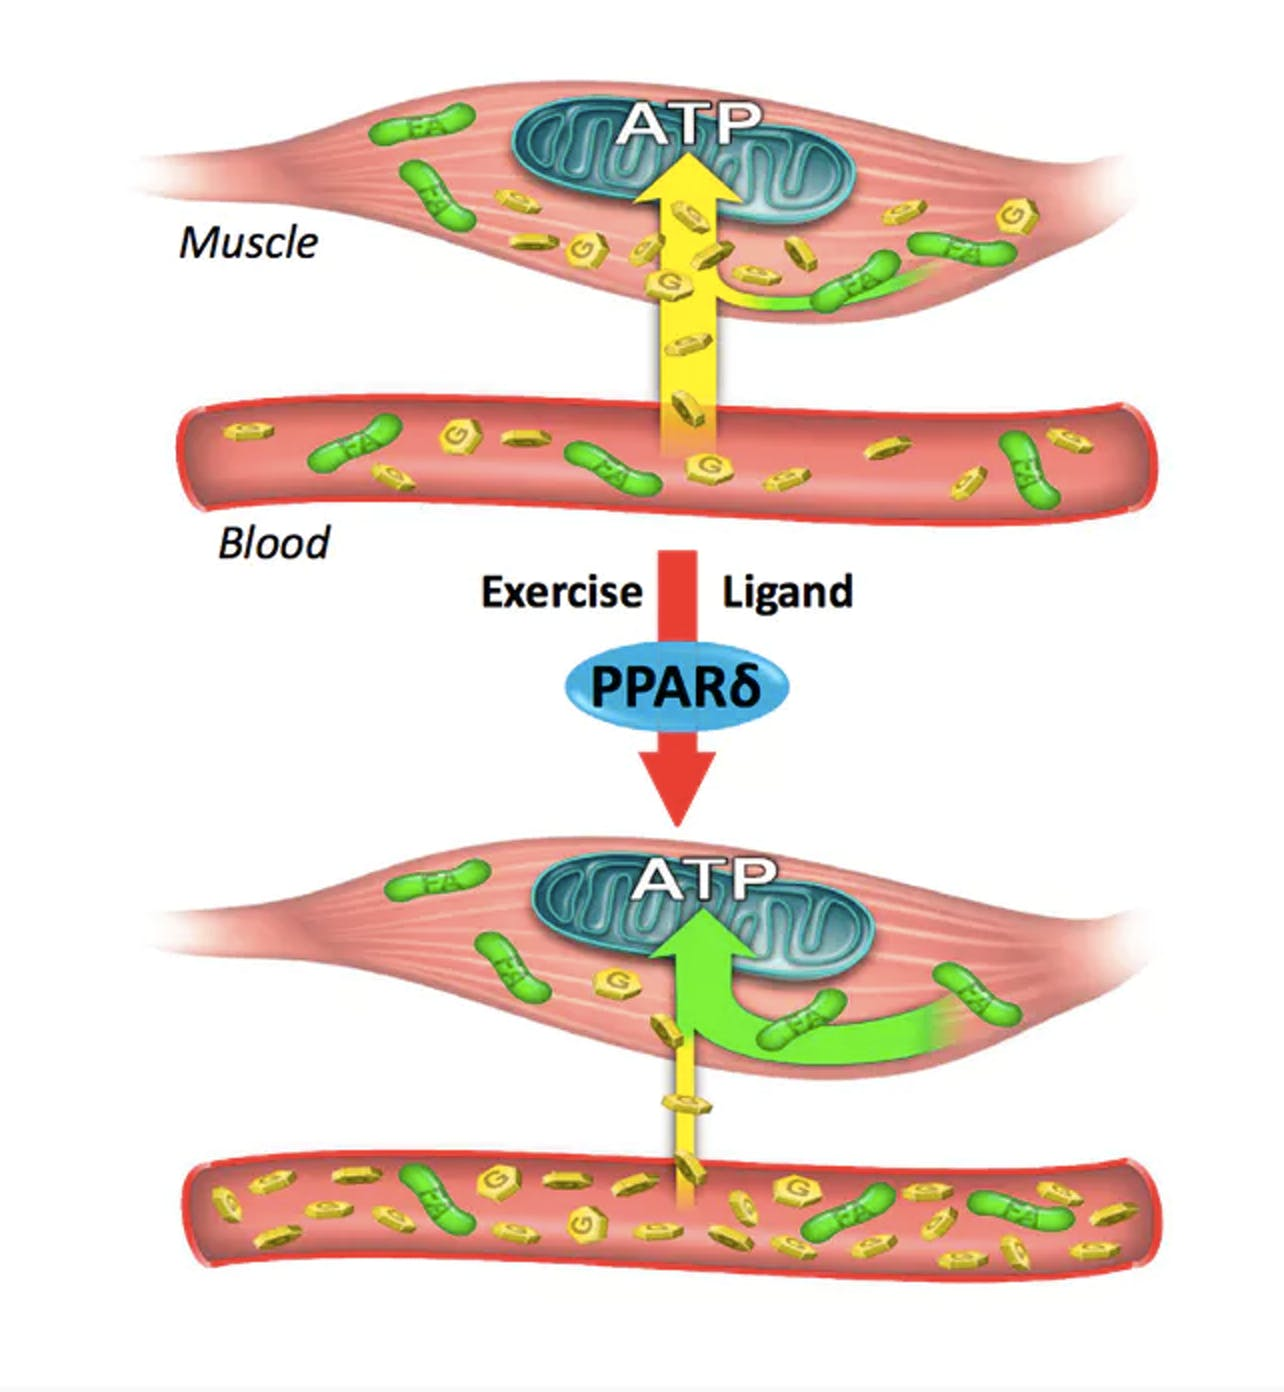 PPARd glucose and fatty acids